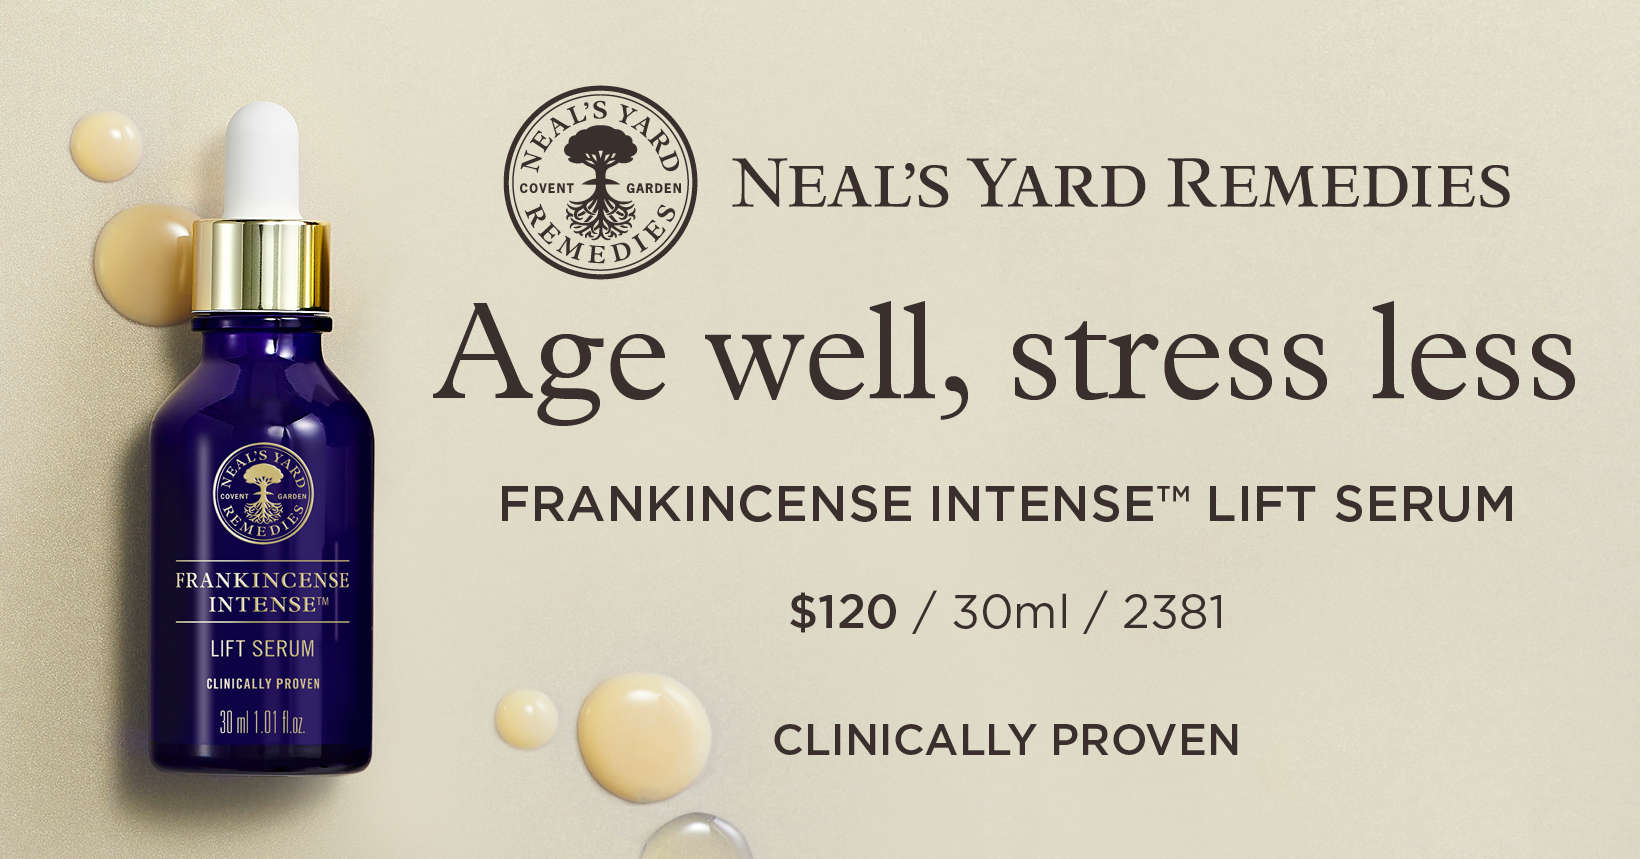 Frankincense Intense Lift Serum by Neal's Yard Remedies